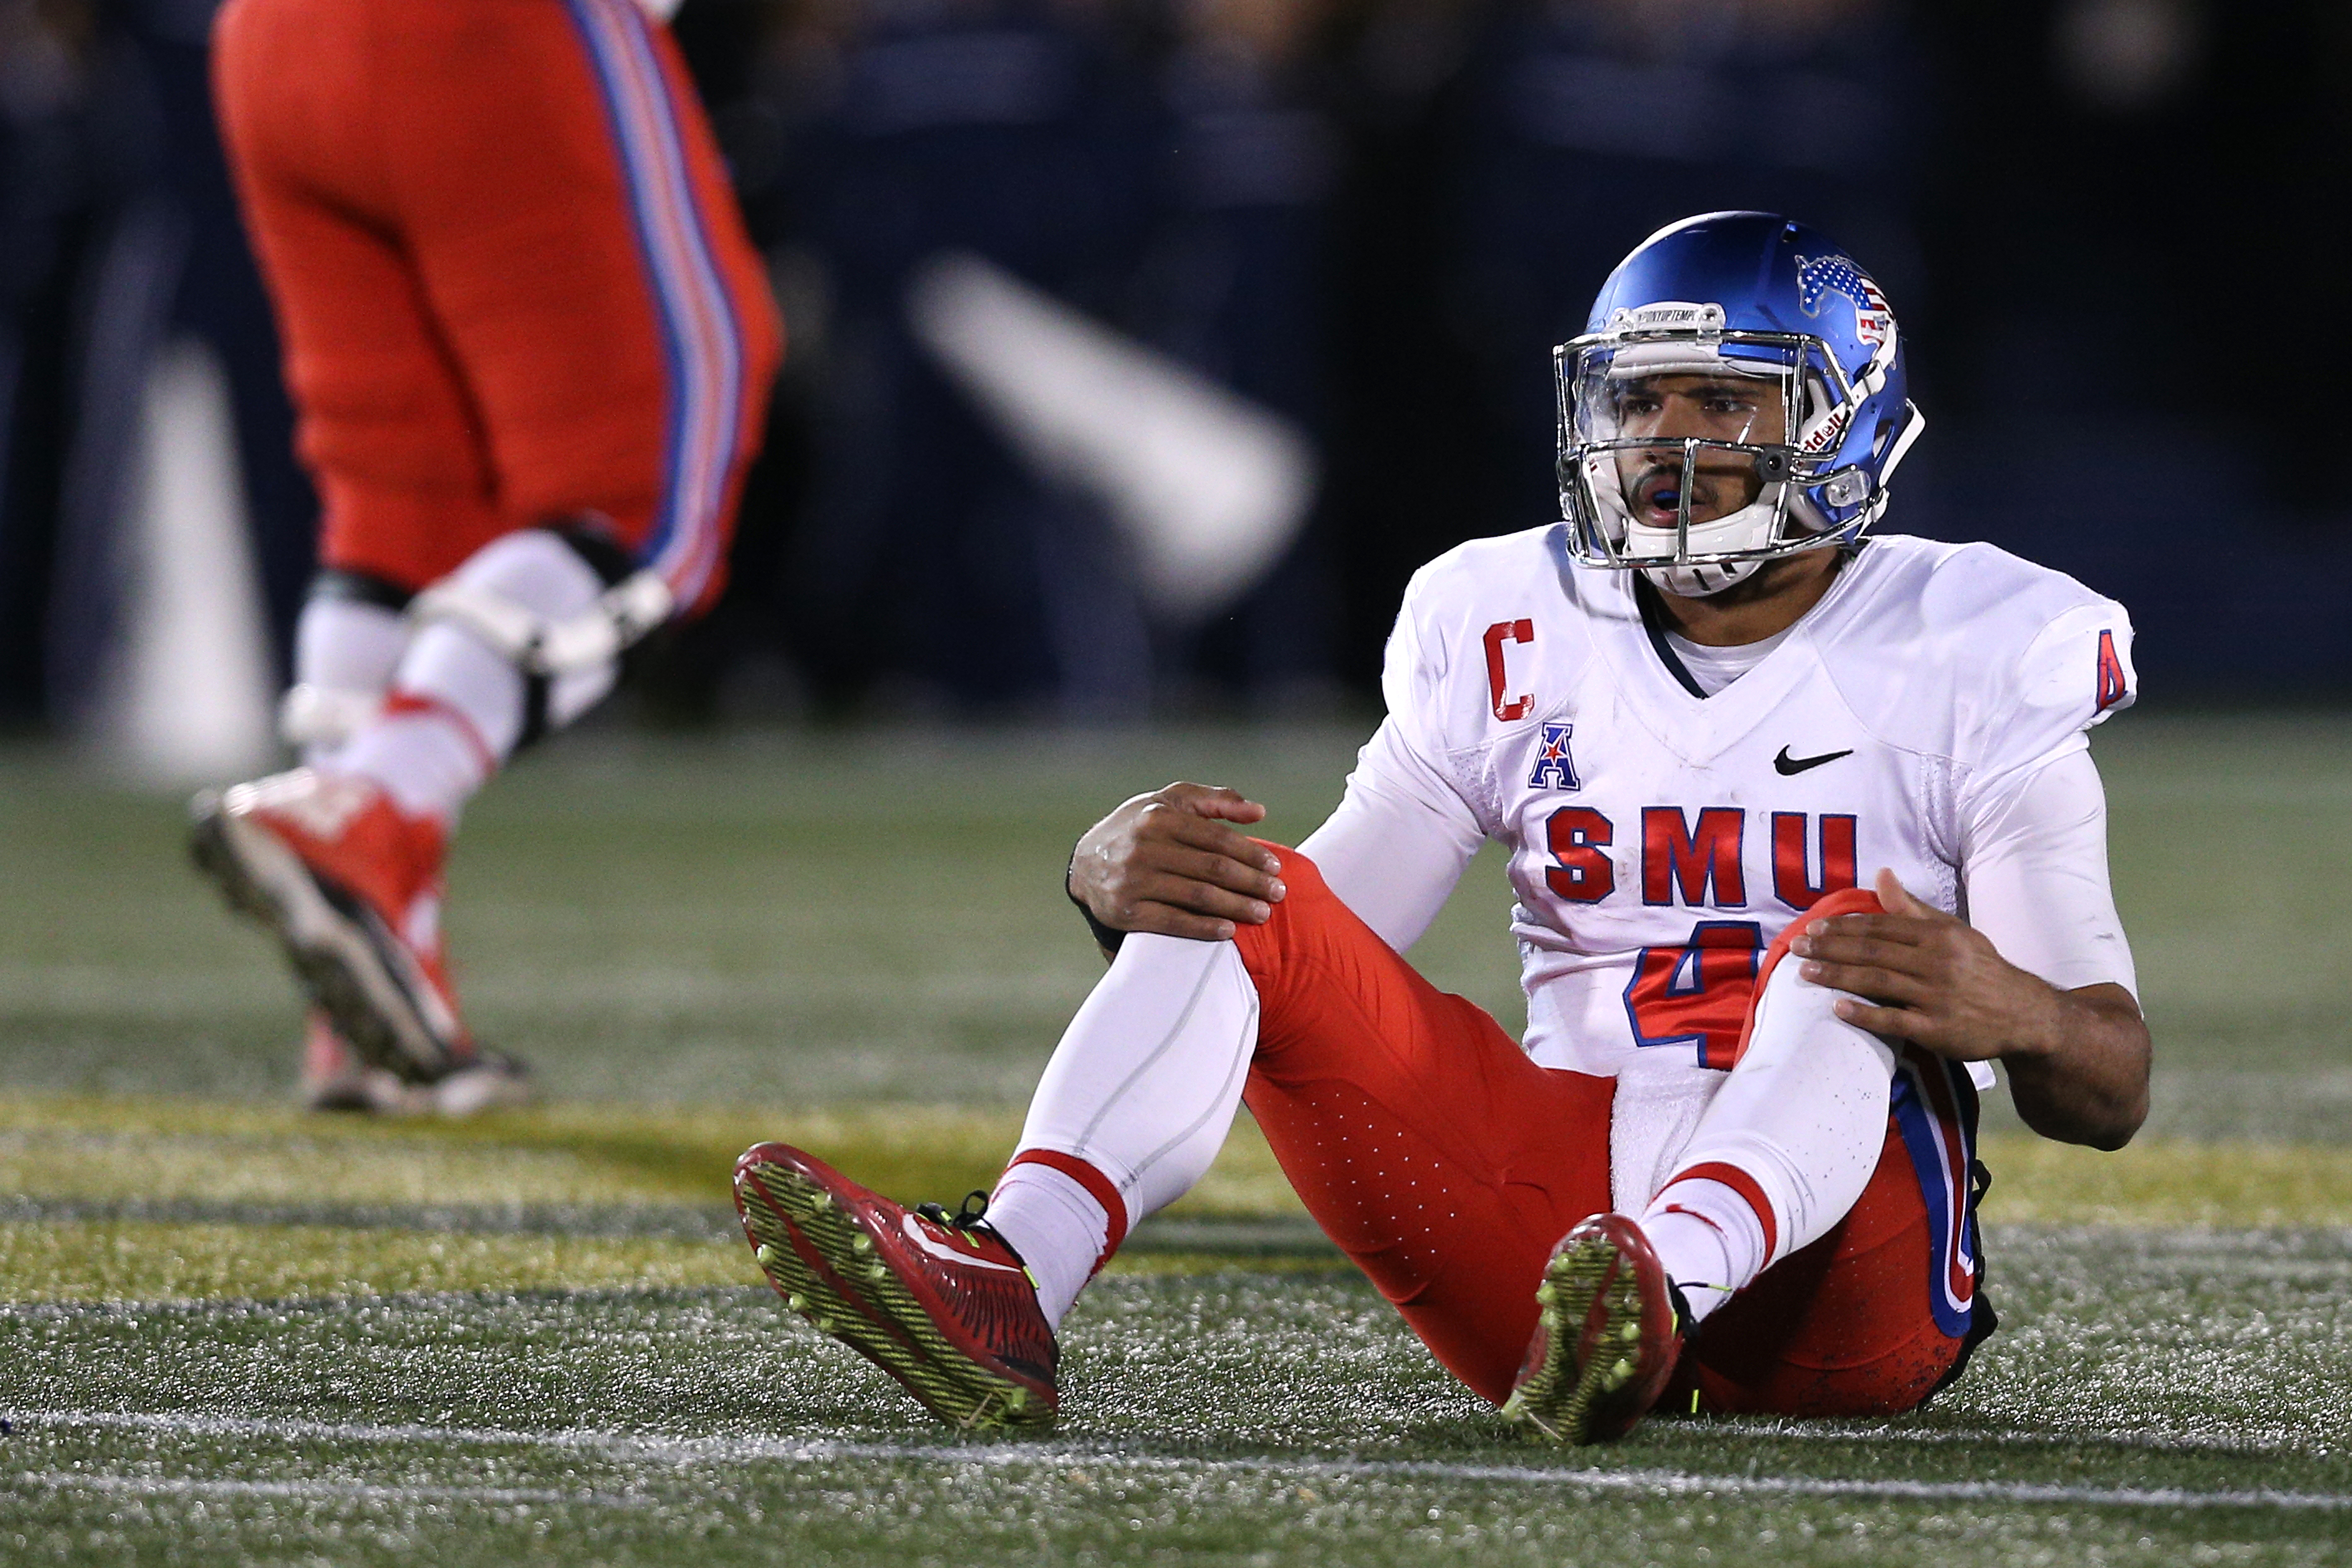 ANNAPOLIS, MD - NOVEMBER 14: Quarterback Matt Davis #4 of the Southern Methodist Mustangs looks on after a failed fourth down conversion in the third quarter against the Navy Midshipmen during the first half at Navy-Marine Corps Memorial Stadium on November 14, 2015 in Annapolis, Maryland. The Navy Midshipmen won, 55-14. (Photo by Patrick Smith/Getty Images)